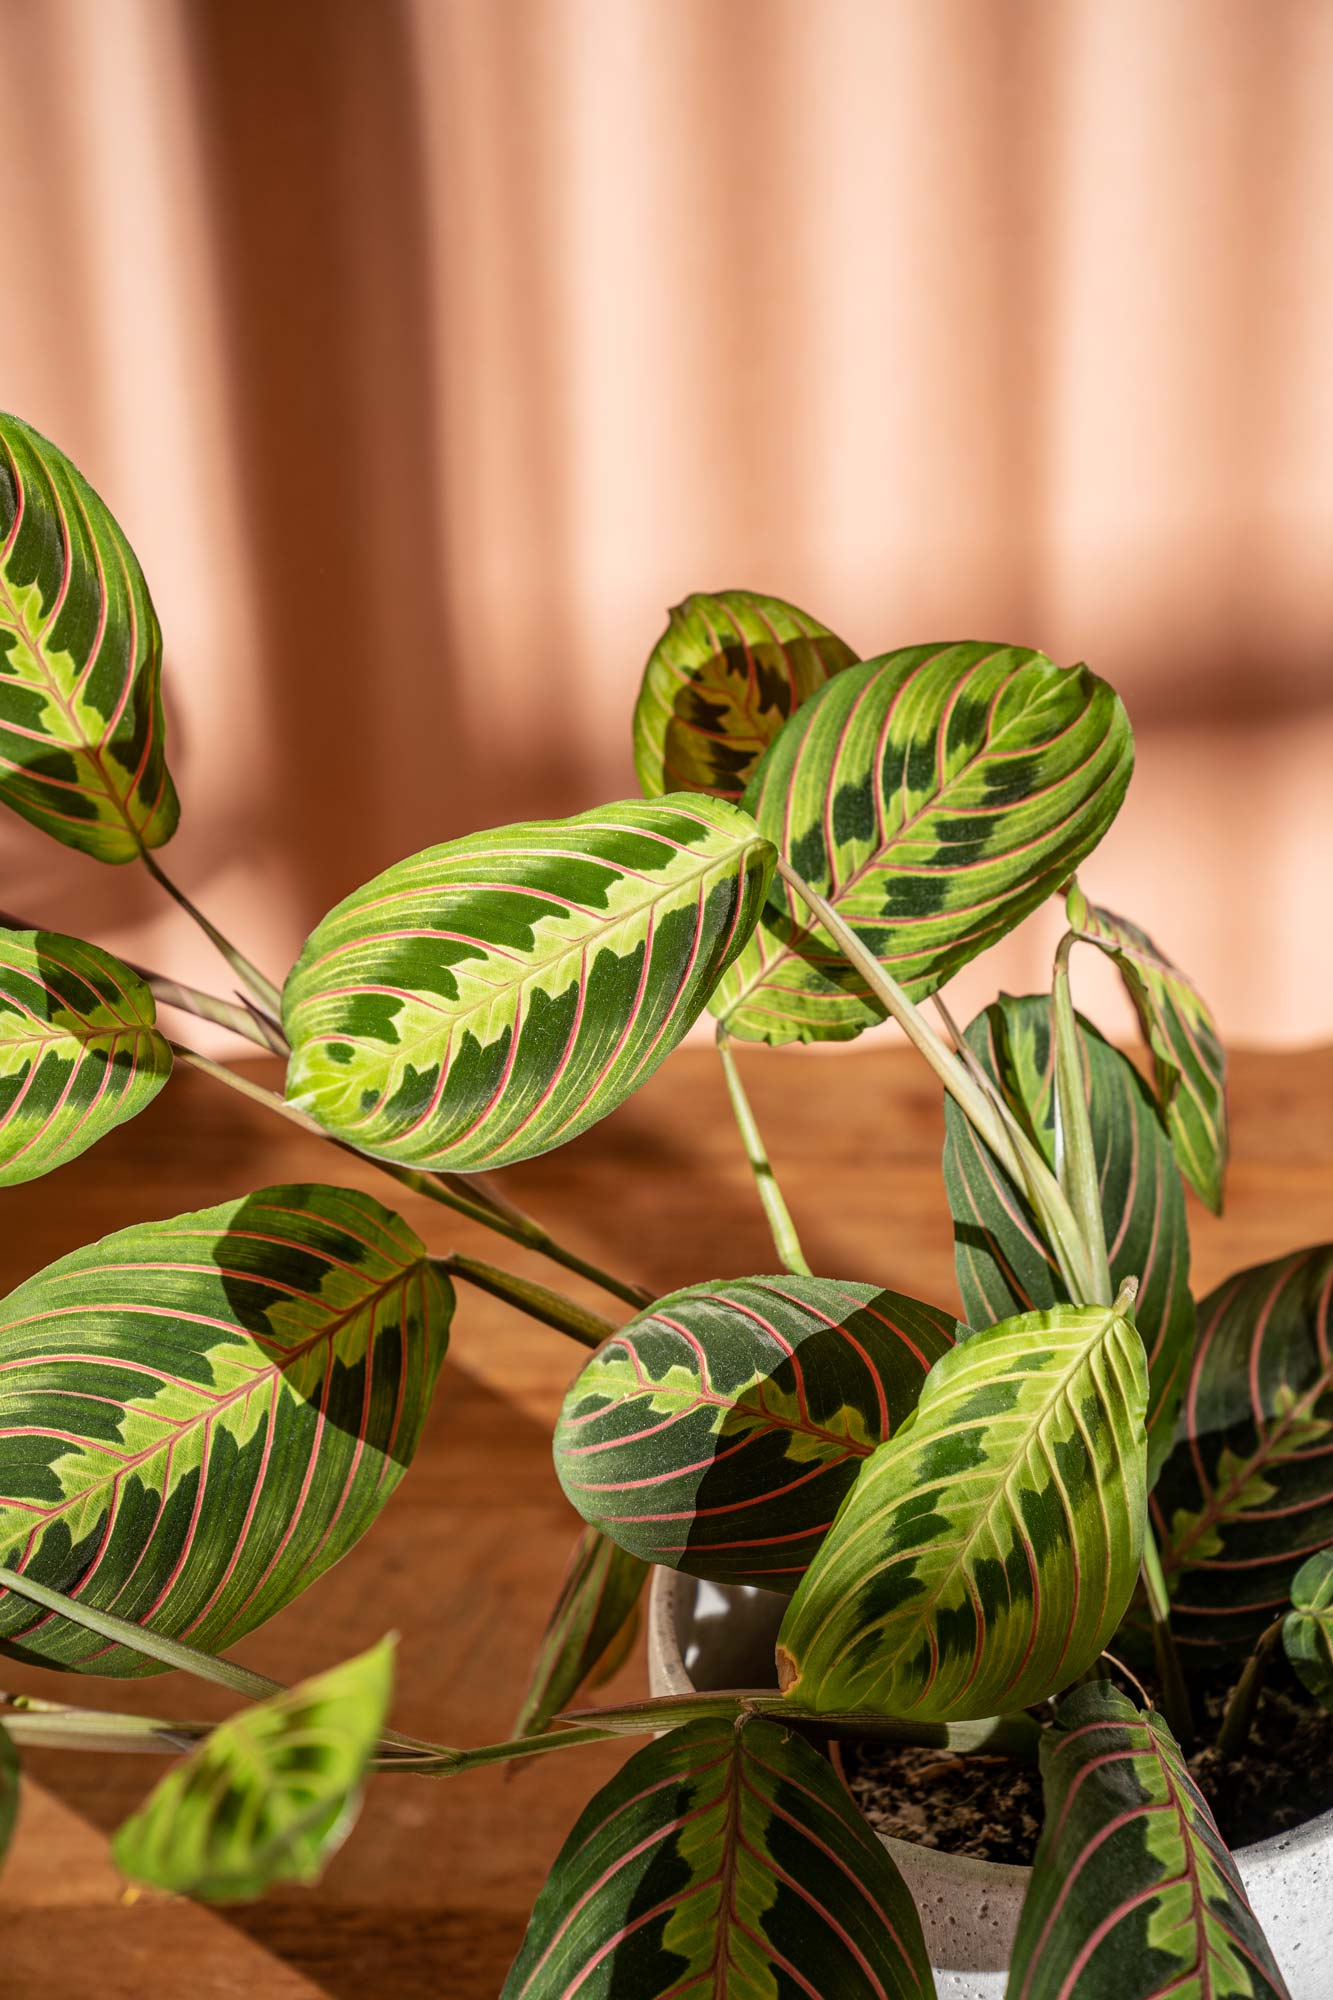 Plant Photography of Maranta leuconeura